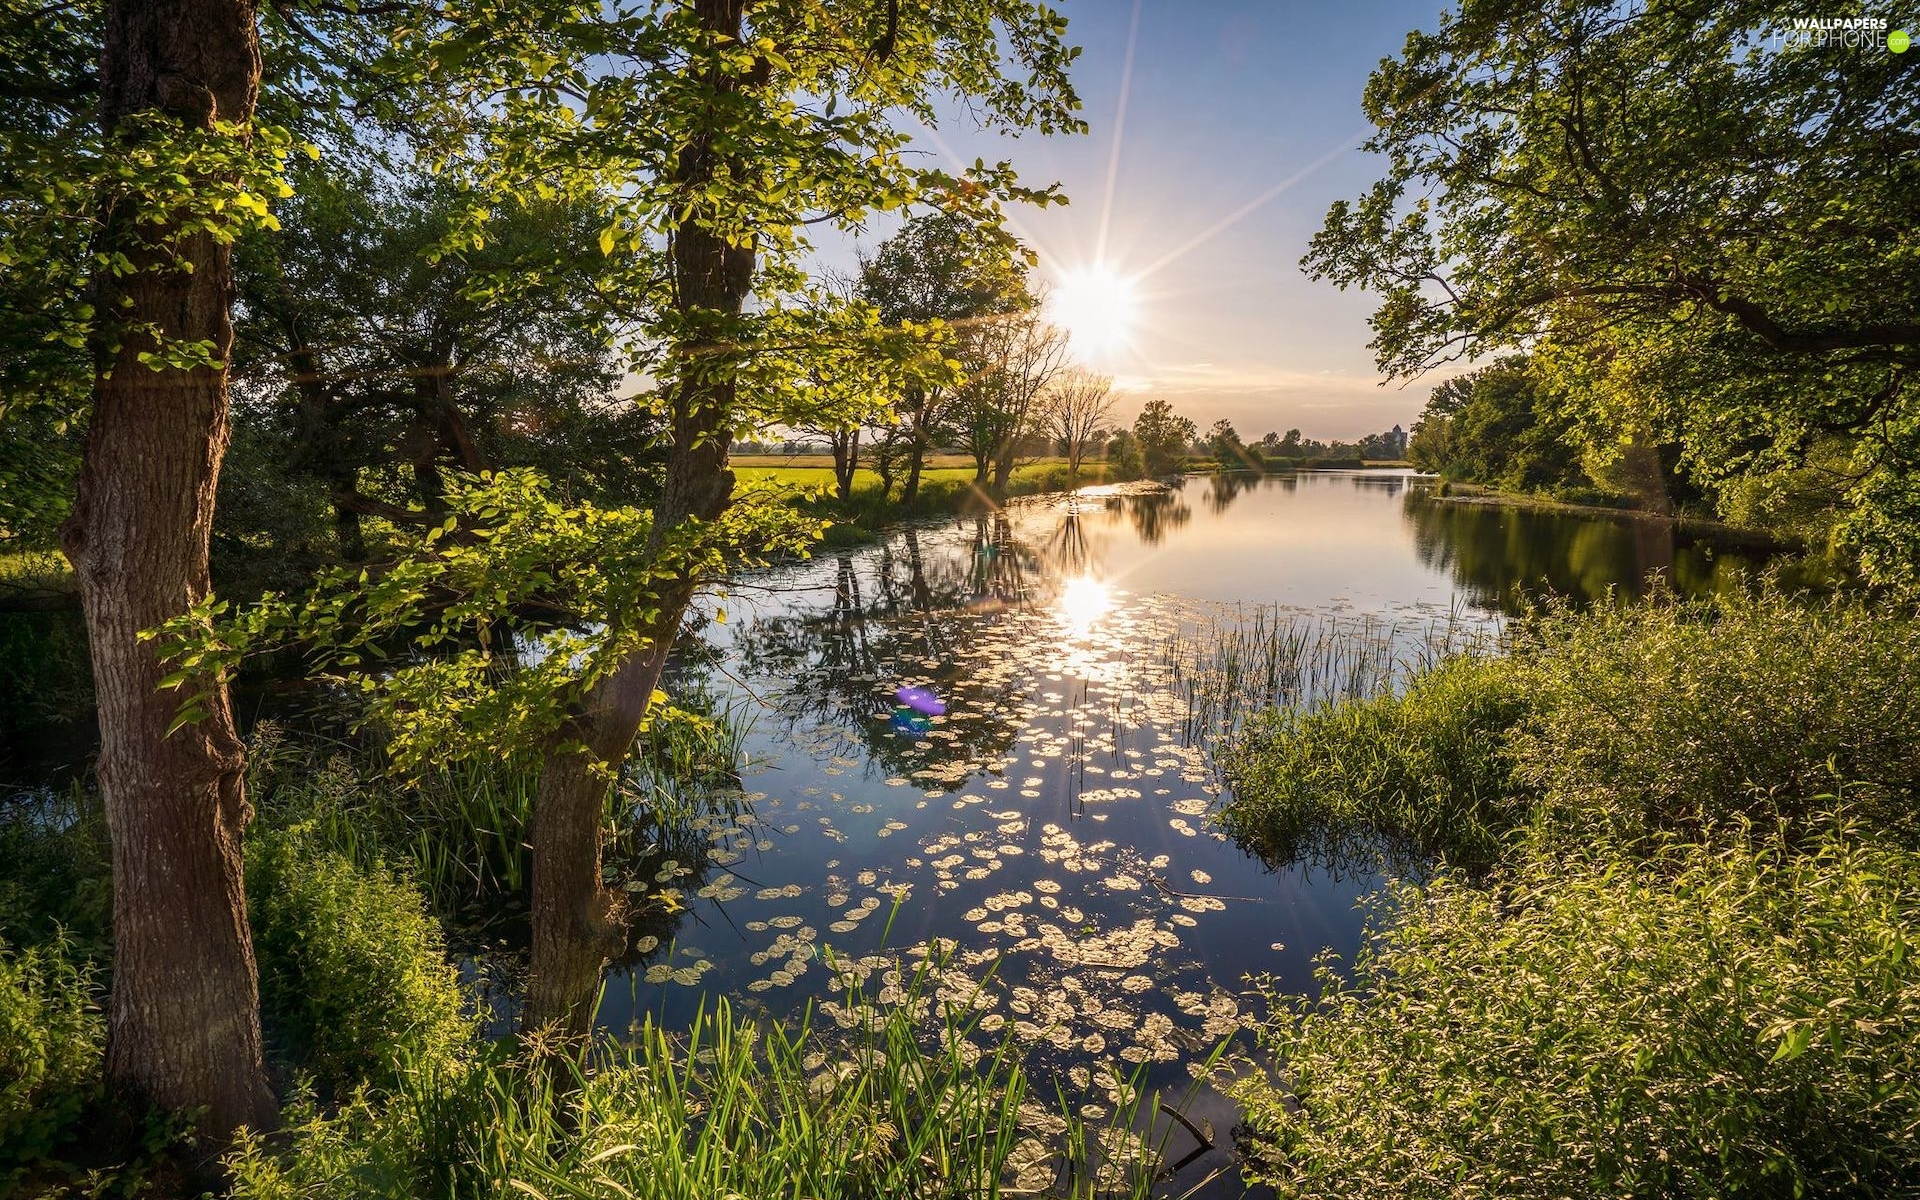 lake, Park, viewes, reflection, trees, rays of the Sun